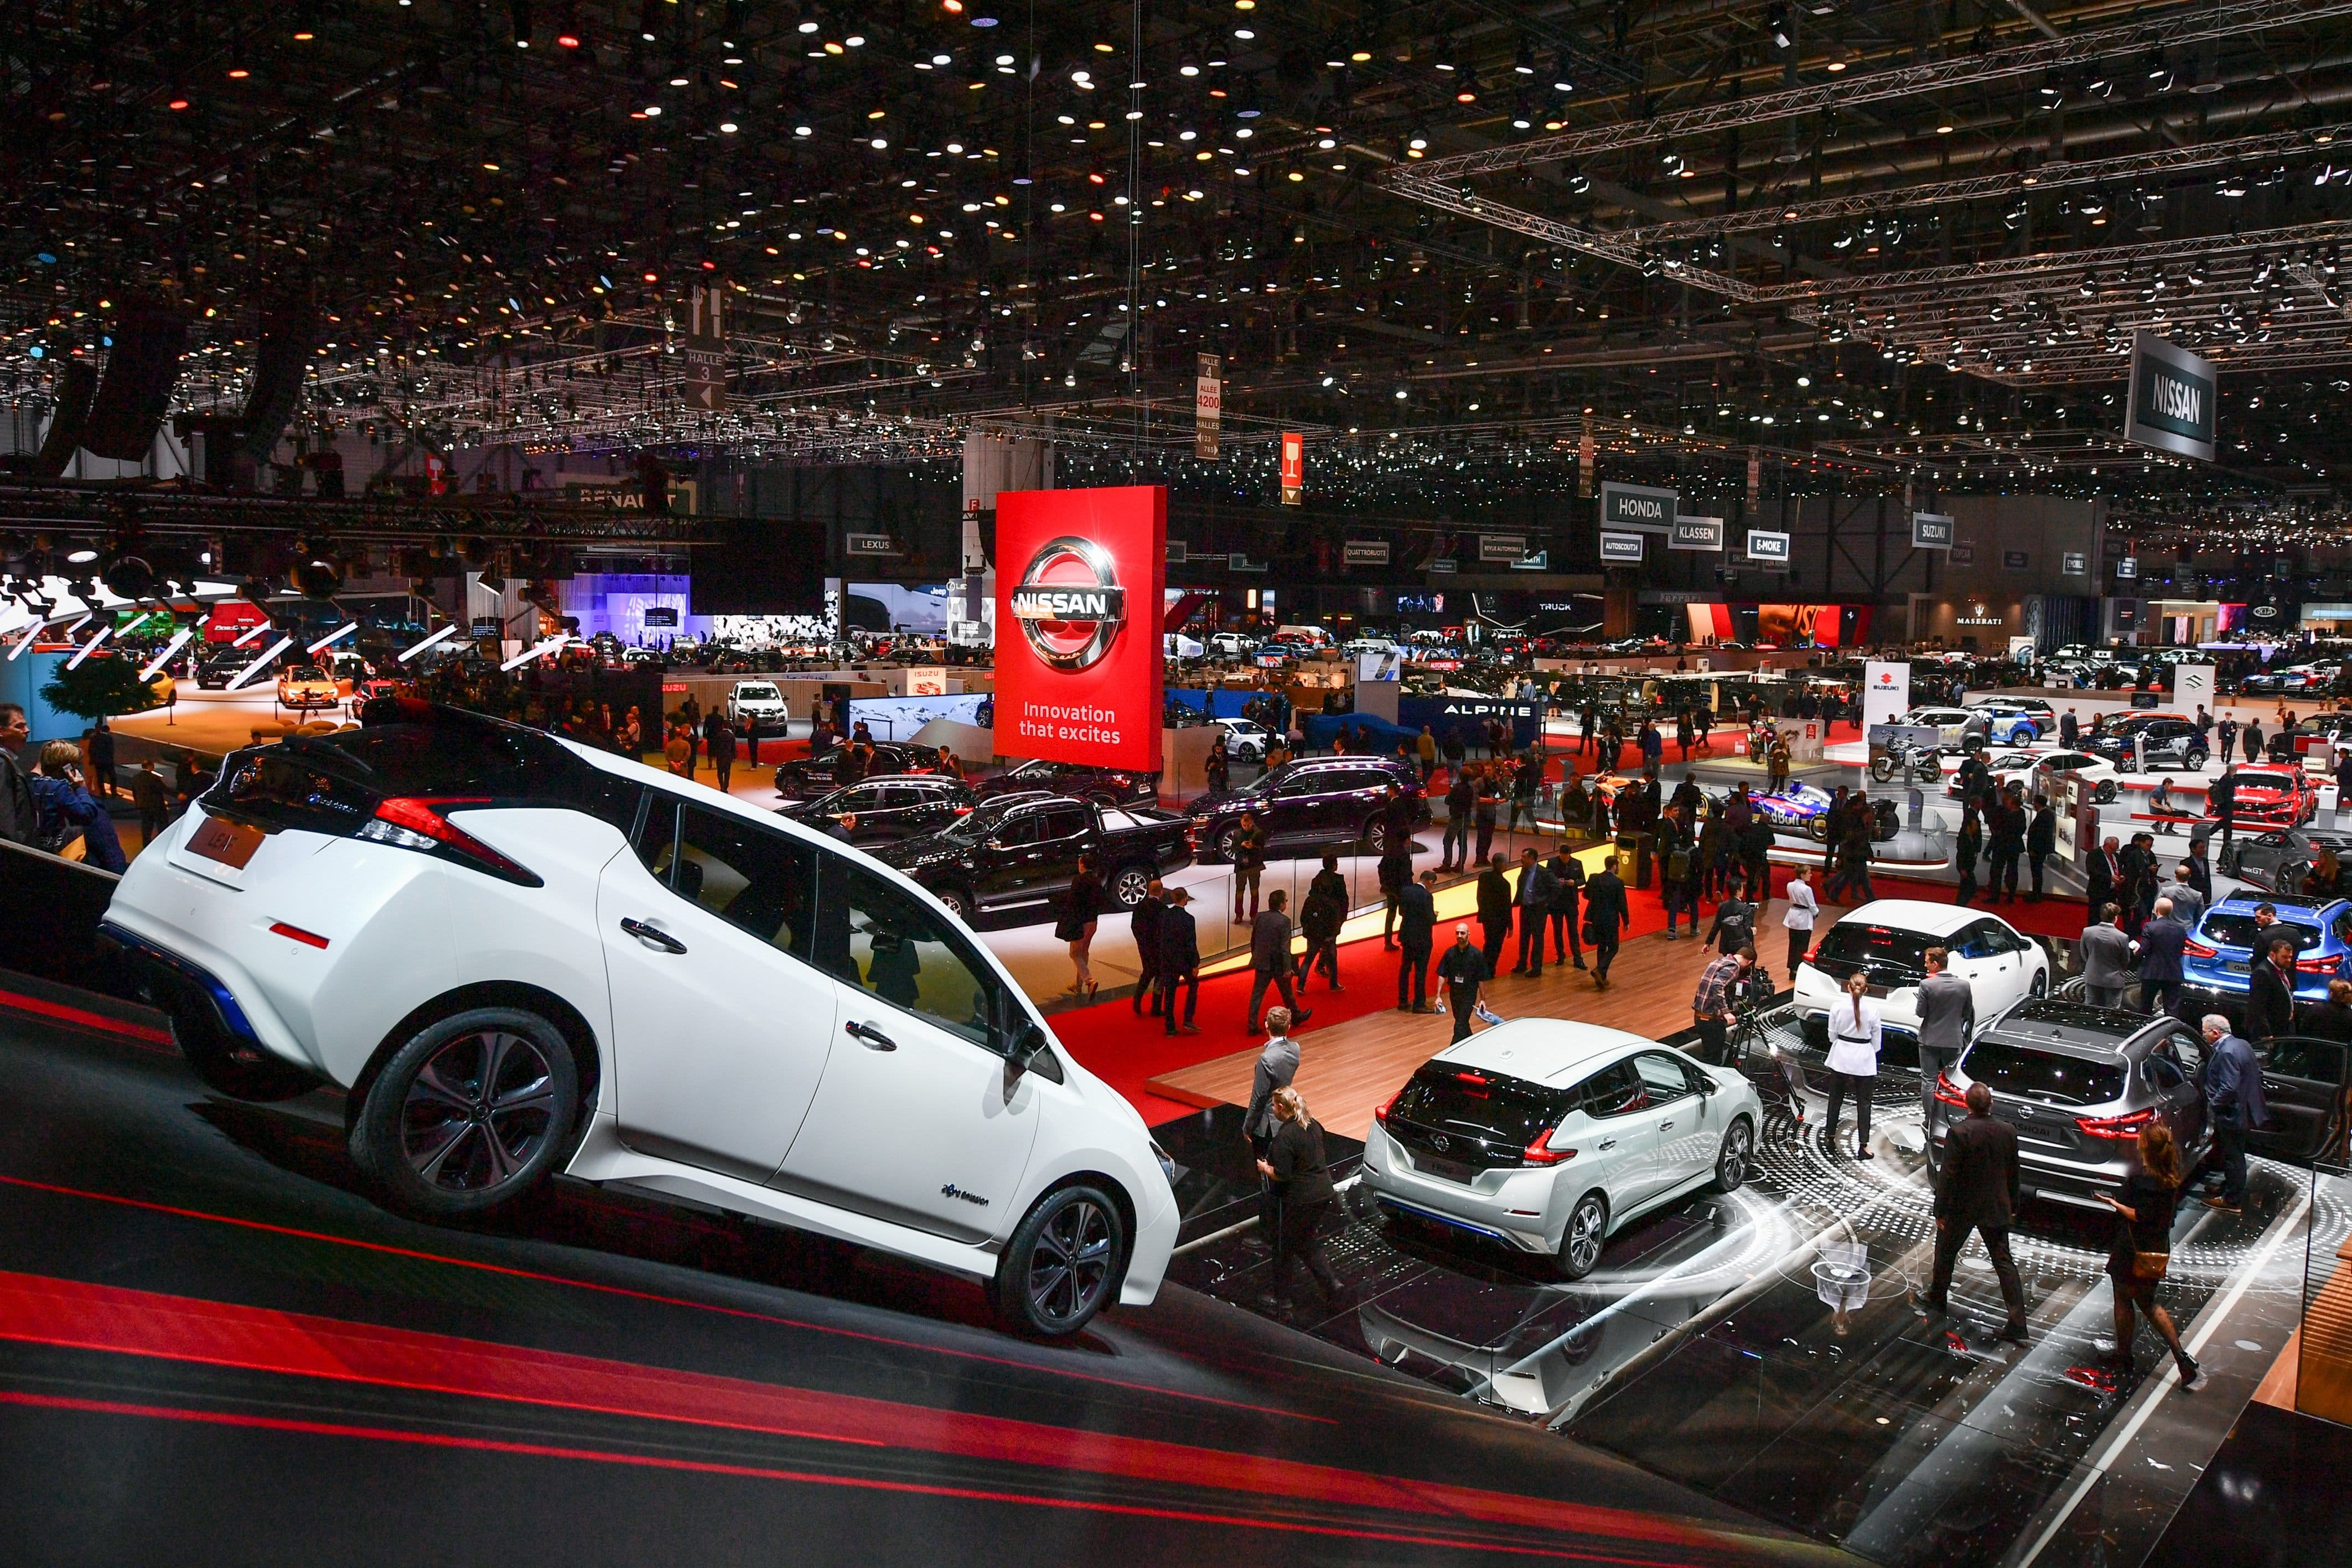 How 2 long-gone European car brands are banking on the Geneva Motor Show for a chance at the future